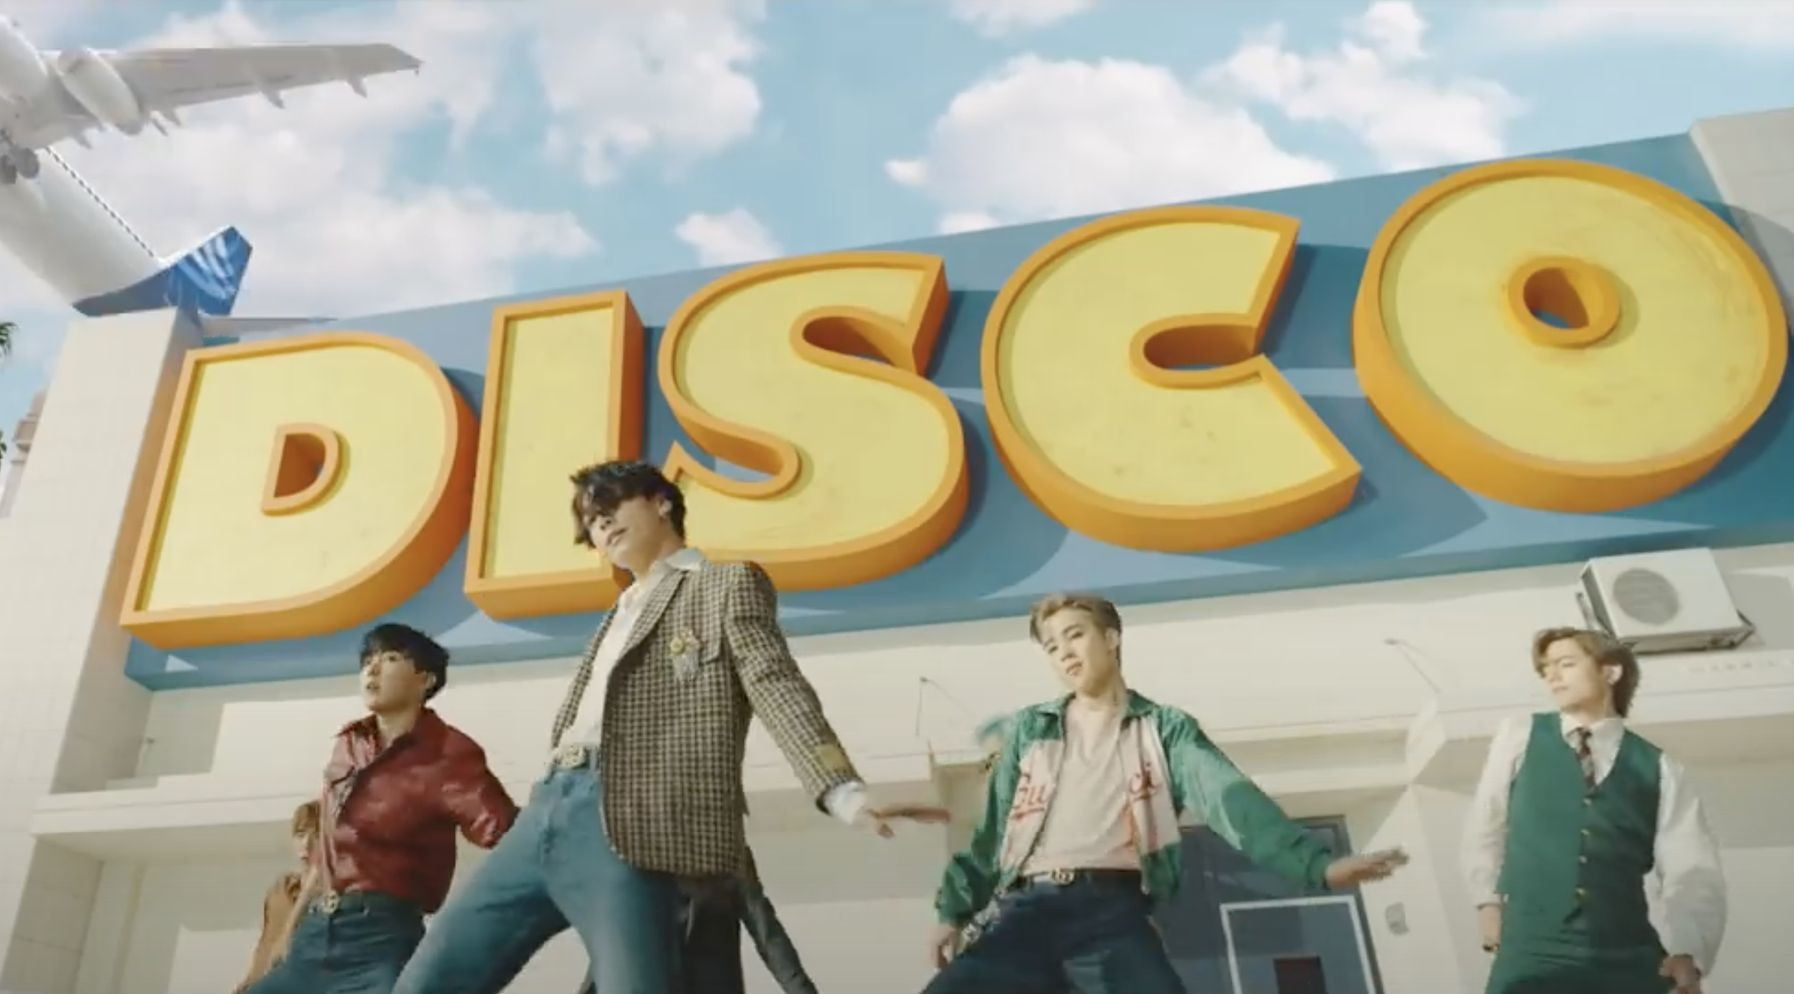 BTS release their first all-English track 'Dynamite', and it's a disco bop! | Thaiger